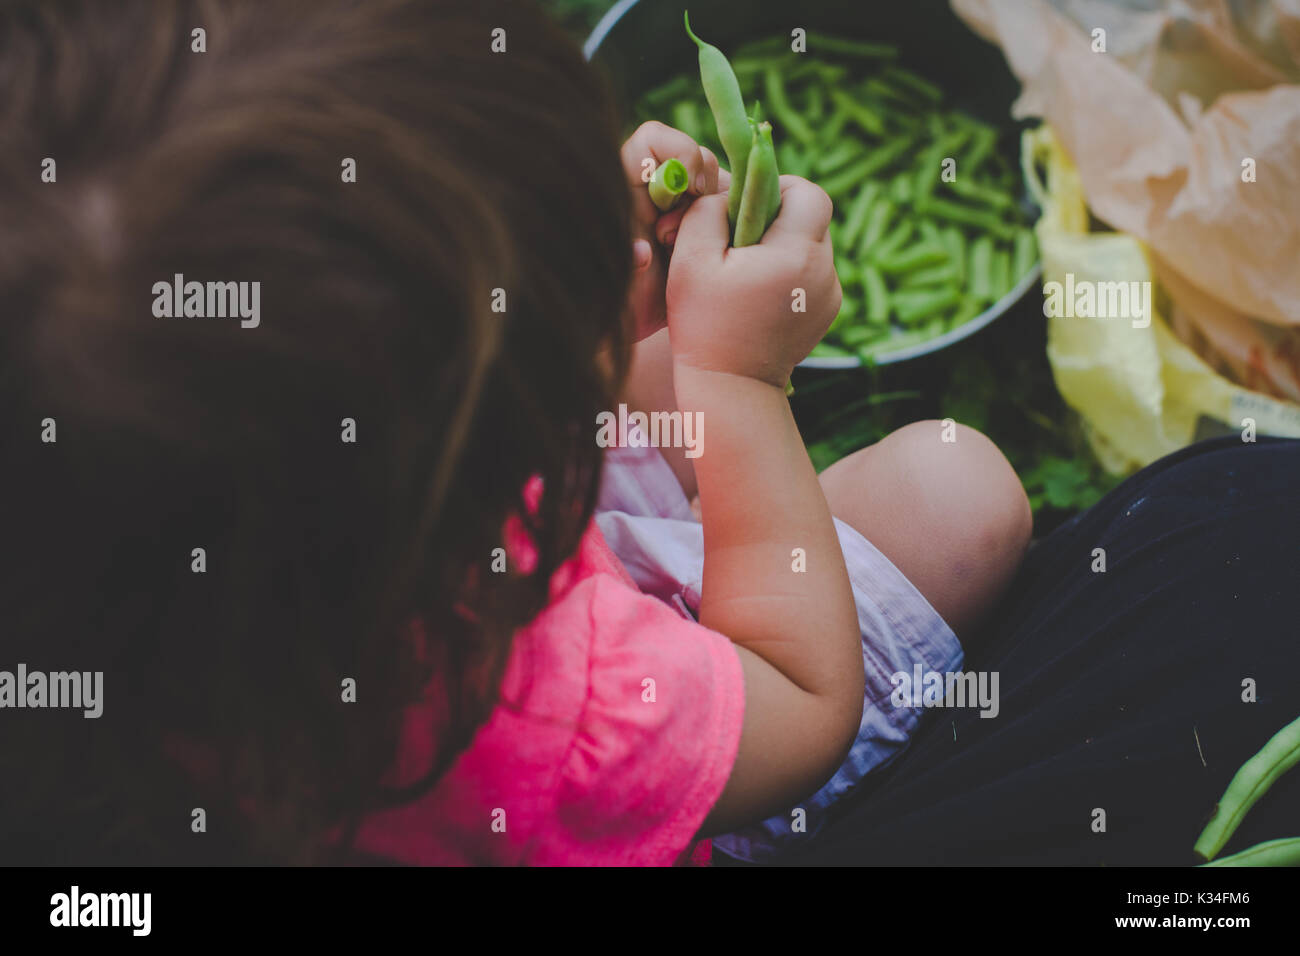 Young girl snaps fresh green beans. - Stock Image